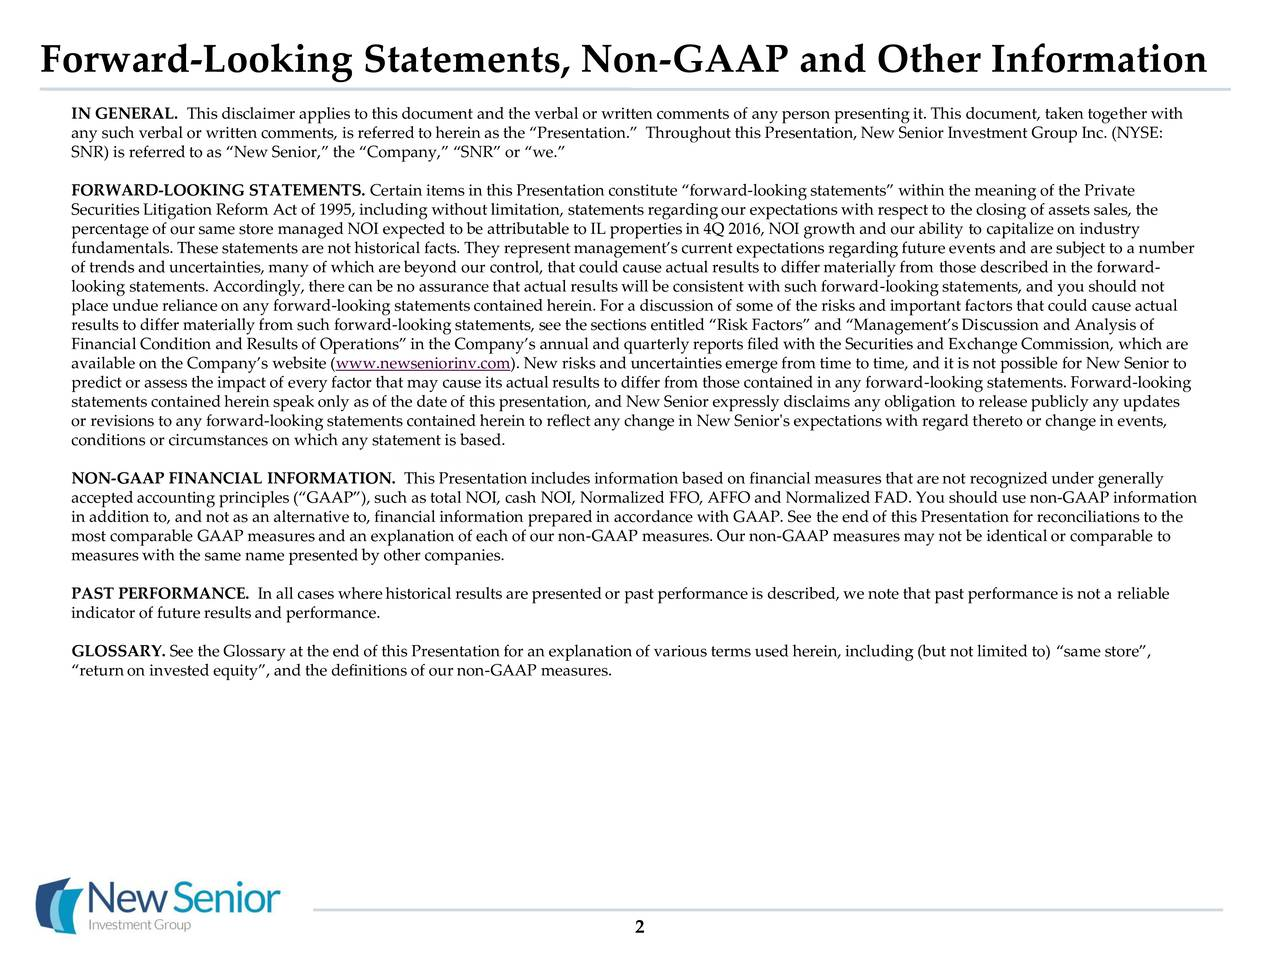 IN GENERAL. This disclaimer applies to this document and the verbal or written comments of any person presenting it. This document, taken together with any such verbal or written comments, is referred to herein as the Presentation. Throughout this Presentation, New Senior Investment Group Inc. (NYSE: SNR) is referred to as New Senior, the Company, SNR or we. FORWARD-LOOKING STATEMENTS. Certain items in this Presentation constitute forward-looking statements within the meaning of the Private Securities Litigation Reform Act of 1995, including without limitation, statements regarding our expectations with respect to the closing of assets sales, the percentage of our same store managed NOI expected to be attributable to IL properties in 4Q 2016, NOI growth and our ability to capitalize on industry fundamentals. These statements are not historical facts. They representmanagements current expectations regarding future events and are subject to a number of trends and uncertainties, many of which are beyond our control, that could cause actual results to differ materially from those described in the forward- looking statements. Accordingly, there can be no assurance that actual results will be consistent with such forward-looking statements, and you should not place undue reliance on any forward-looking statements contained herein. For a discussion of some of the risks and important factors that could cause actual results to differ materially from such forward-looking statements, see the sections entitled Risk Factors and Managements Discussion and Analysis of Financial Condition and Results of Operations in the Companys annual and quarterly reports filed with the Securities and Exchange Commission, which are available on the Companys website (www.newseniorinv.com). New risks and uncertainties emerge from time to time, and it is not possible for New Senior to predict or assess the impact of every factor that may cause its actual results to differ from those contained in an